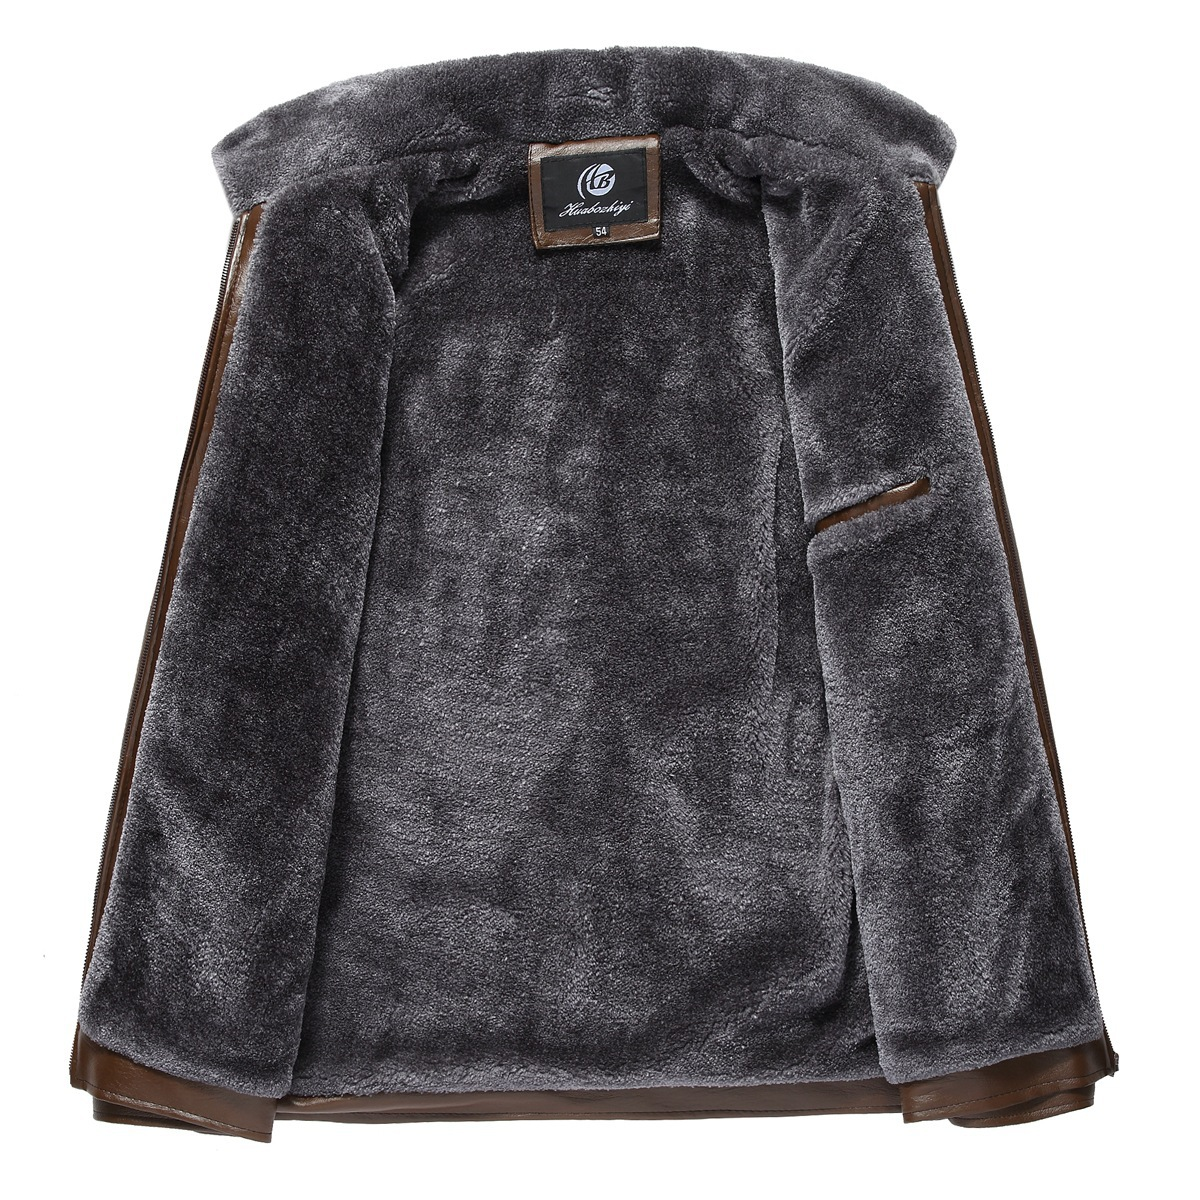 New Style Middle-aged Business Leather Coat Men PU Leather Fur Jacket Brushed And Thick Wander Source Winter